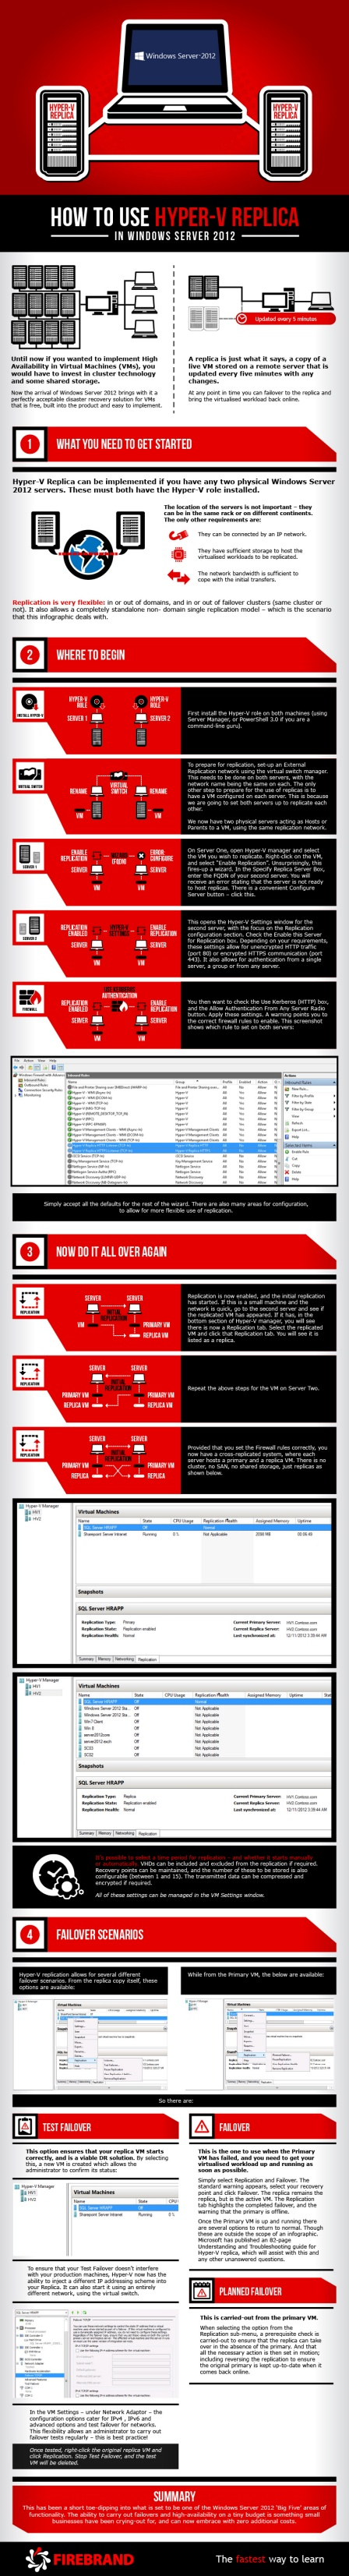 INFOGRAPHIC: How to Use Hyper-V Replica in Windows Server 2012